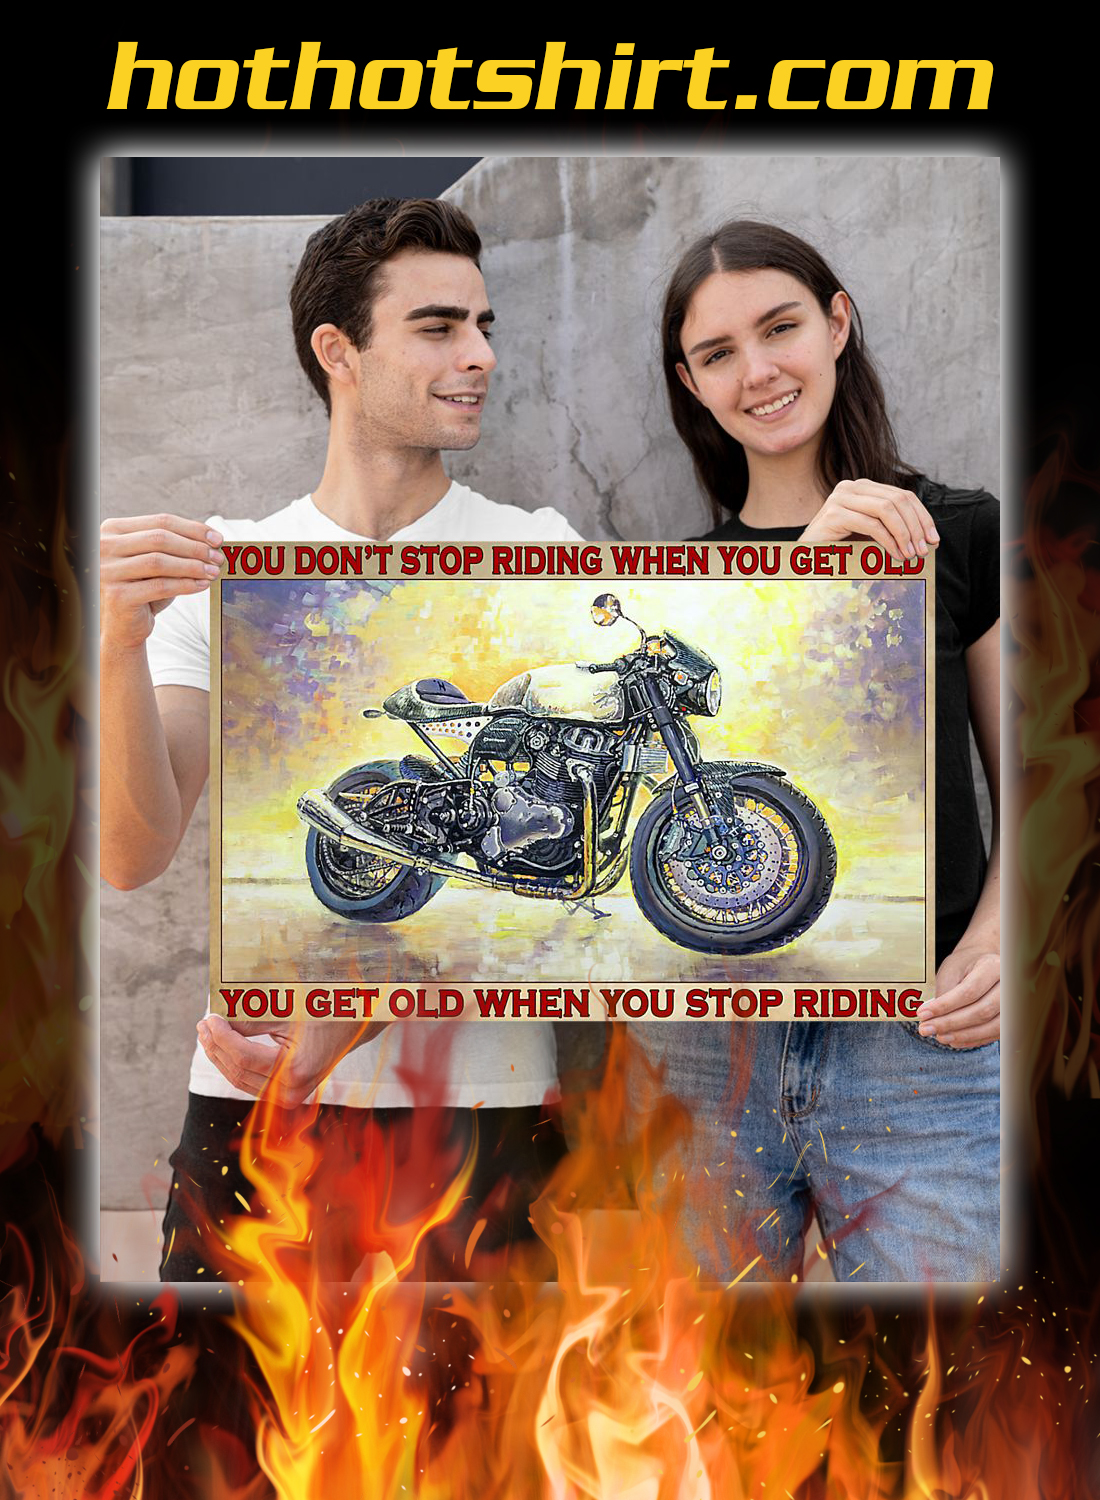 Norton biker you don't stop riding when you get old poster 2